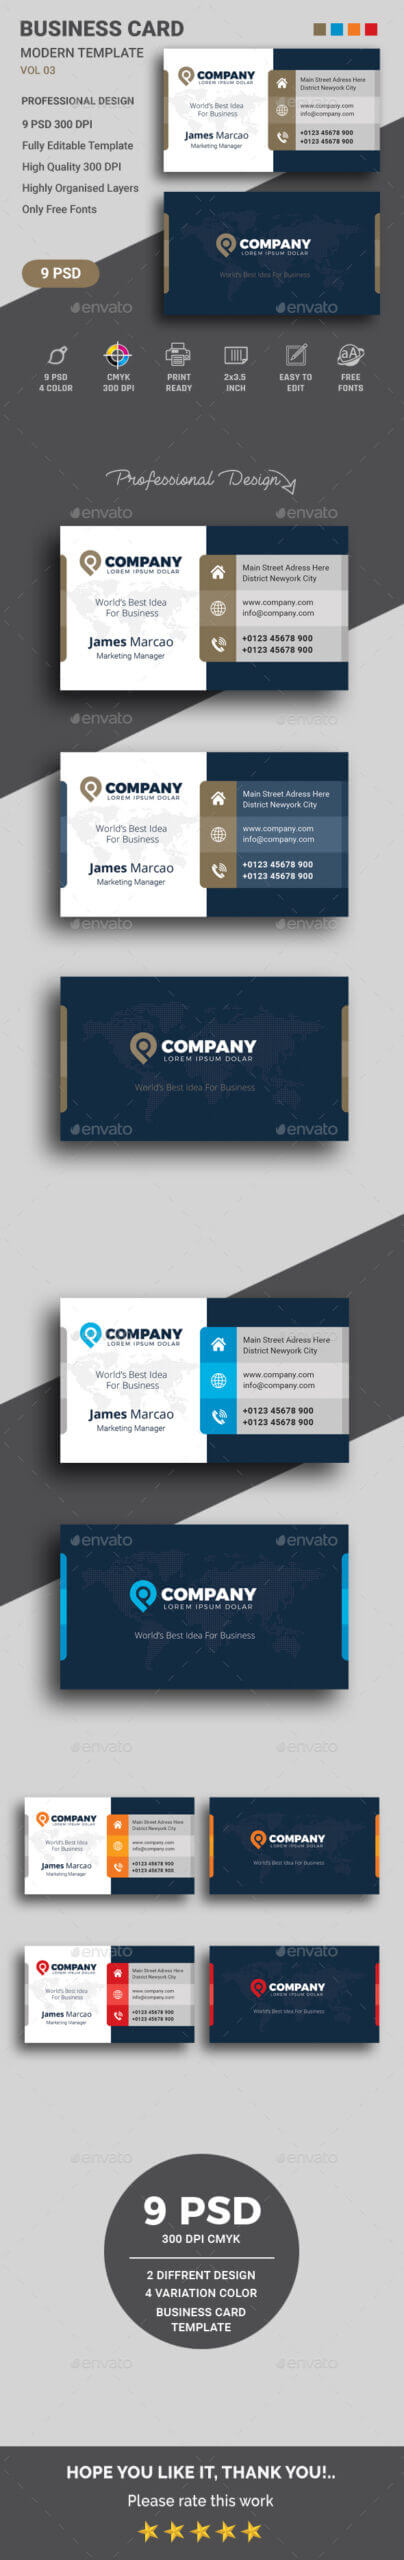 2020's Best Selling Business Card Templates & Designs With Regard To Business Card Maker Template